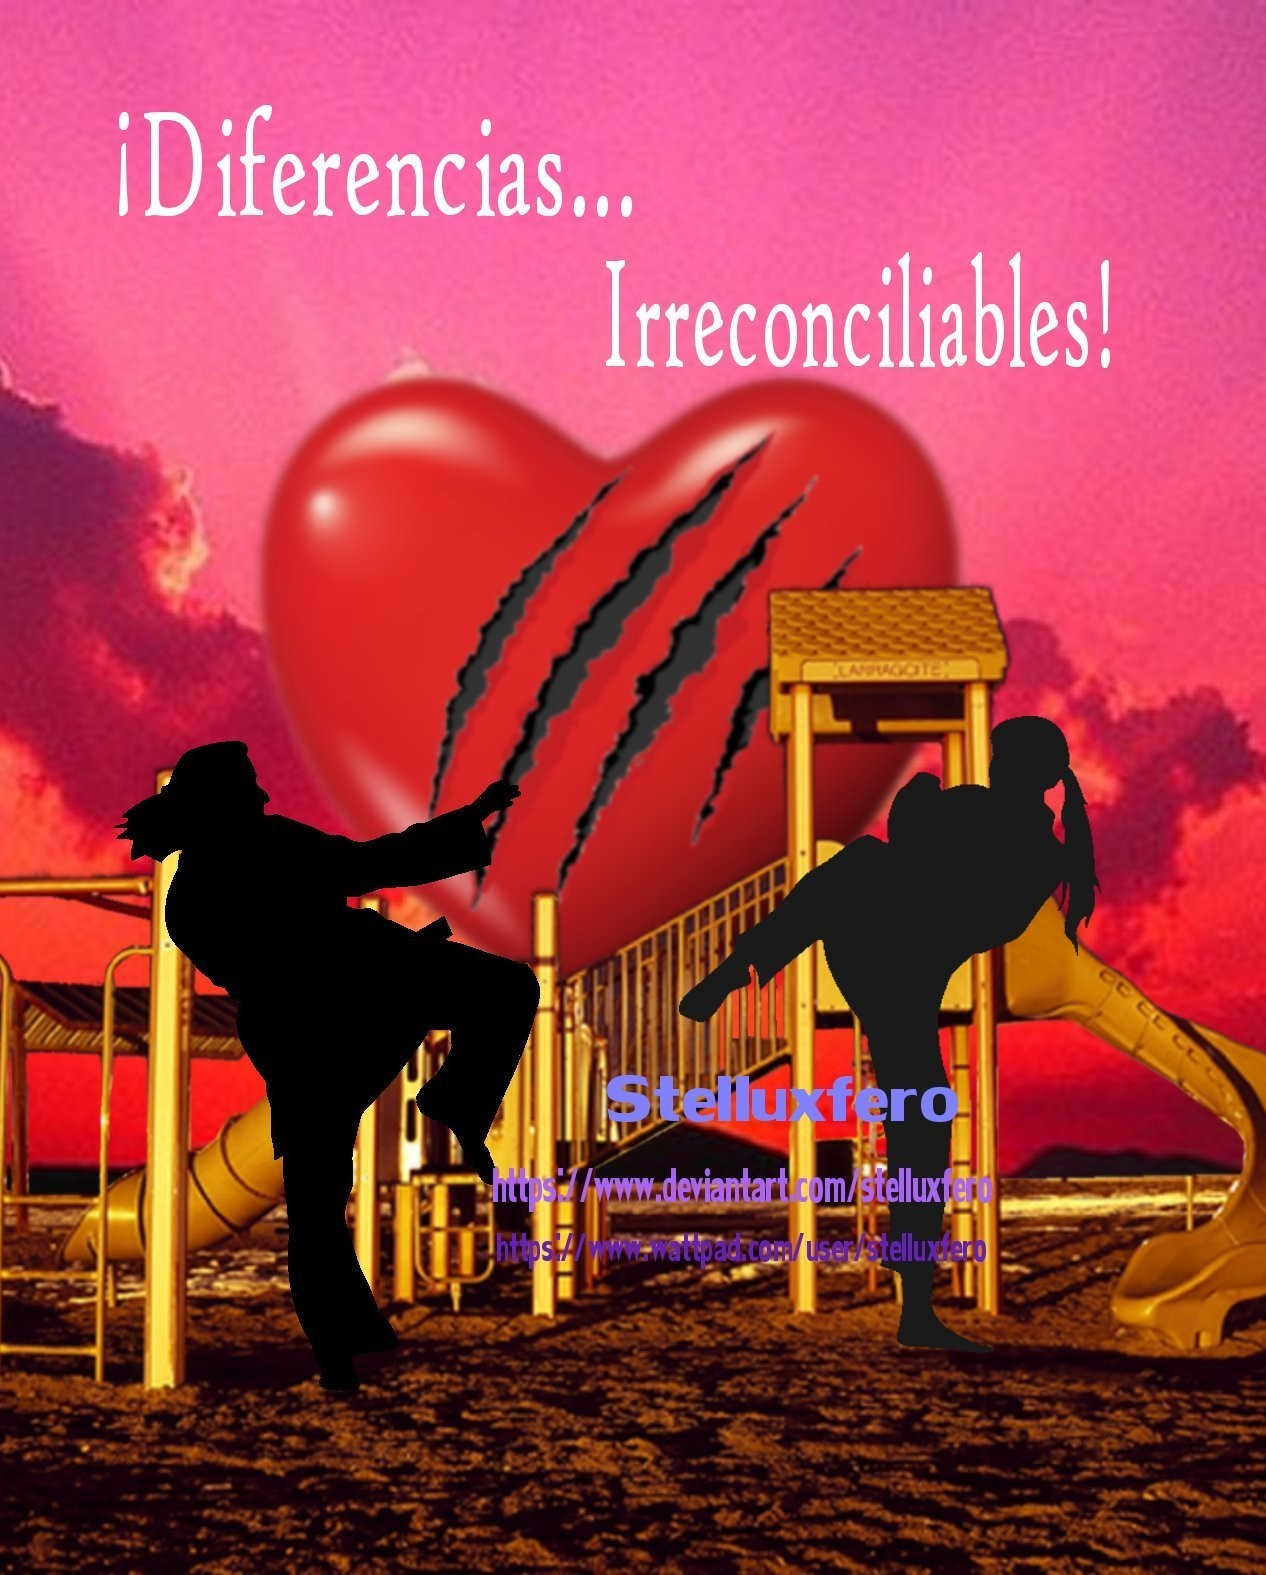 IRRECONCILABLE… DIFFERENCES!